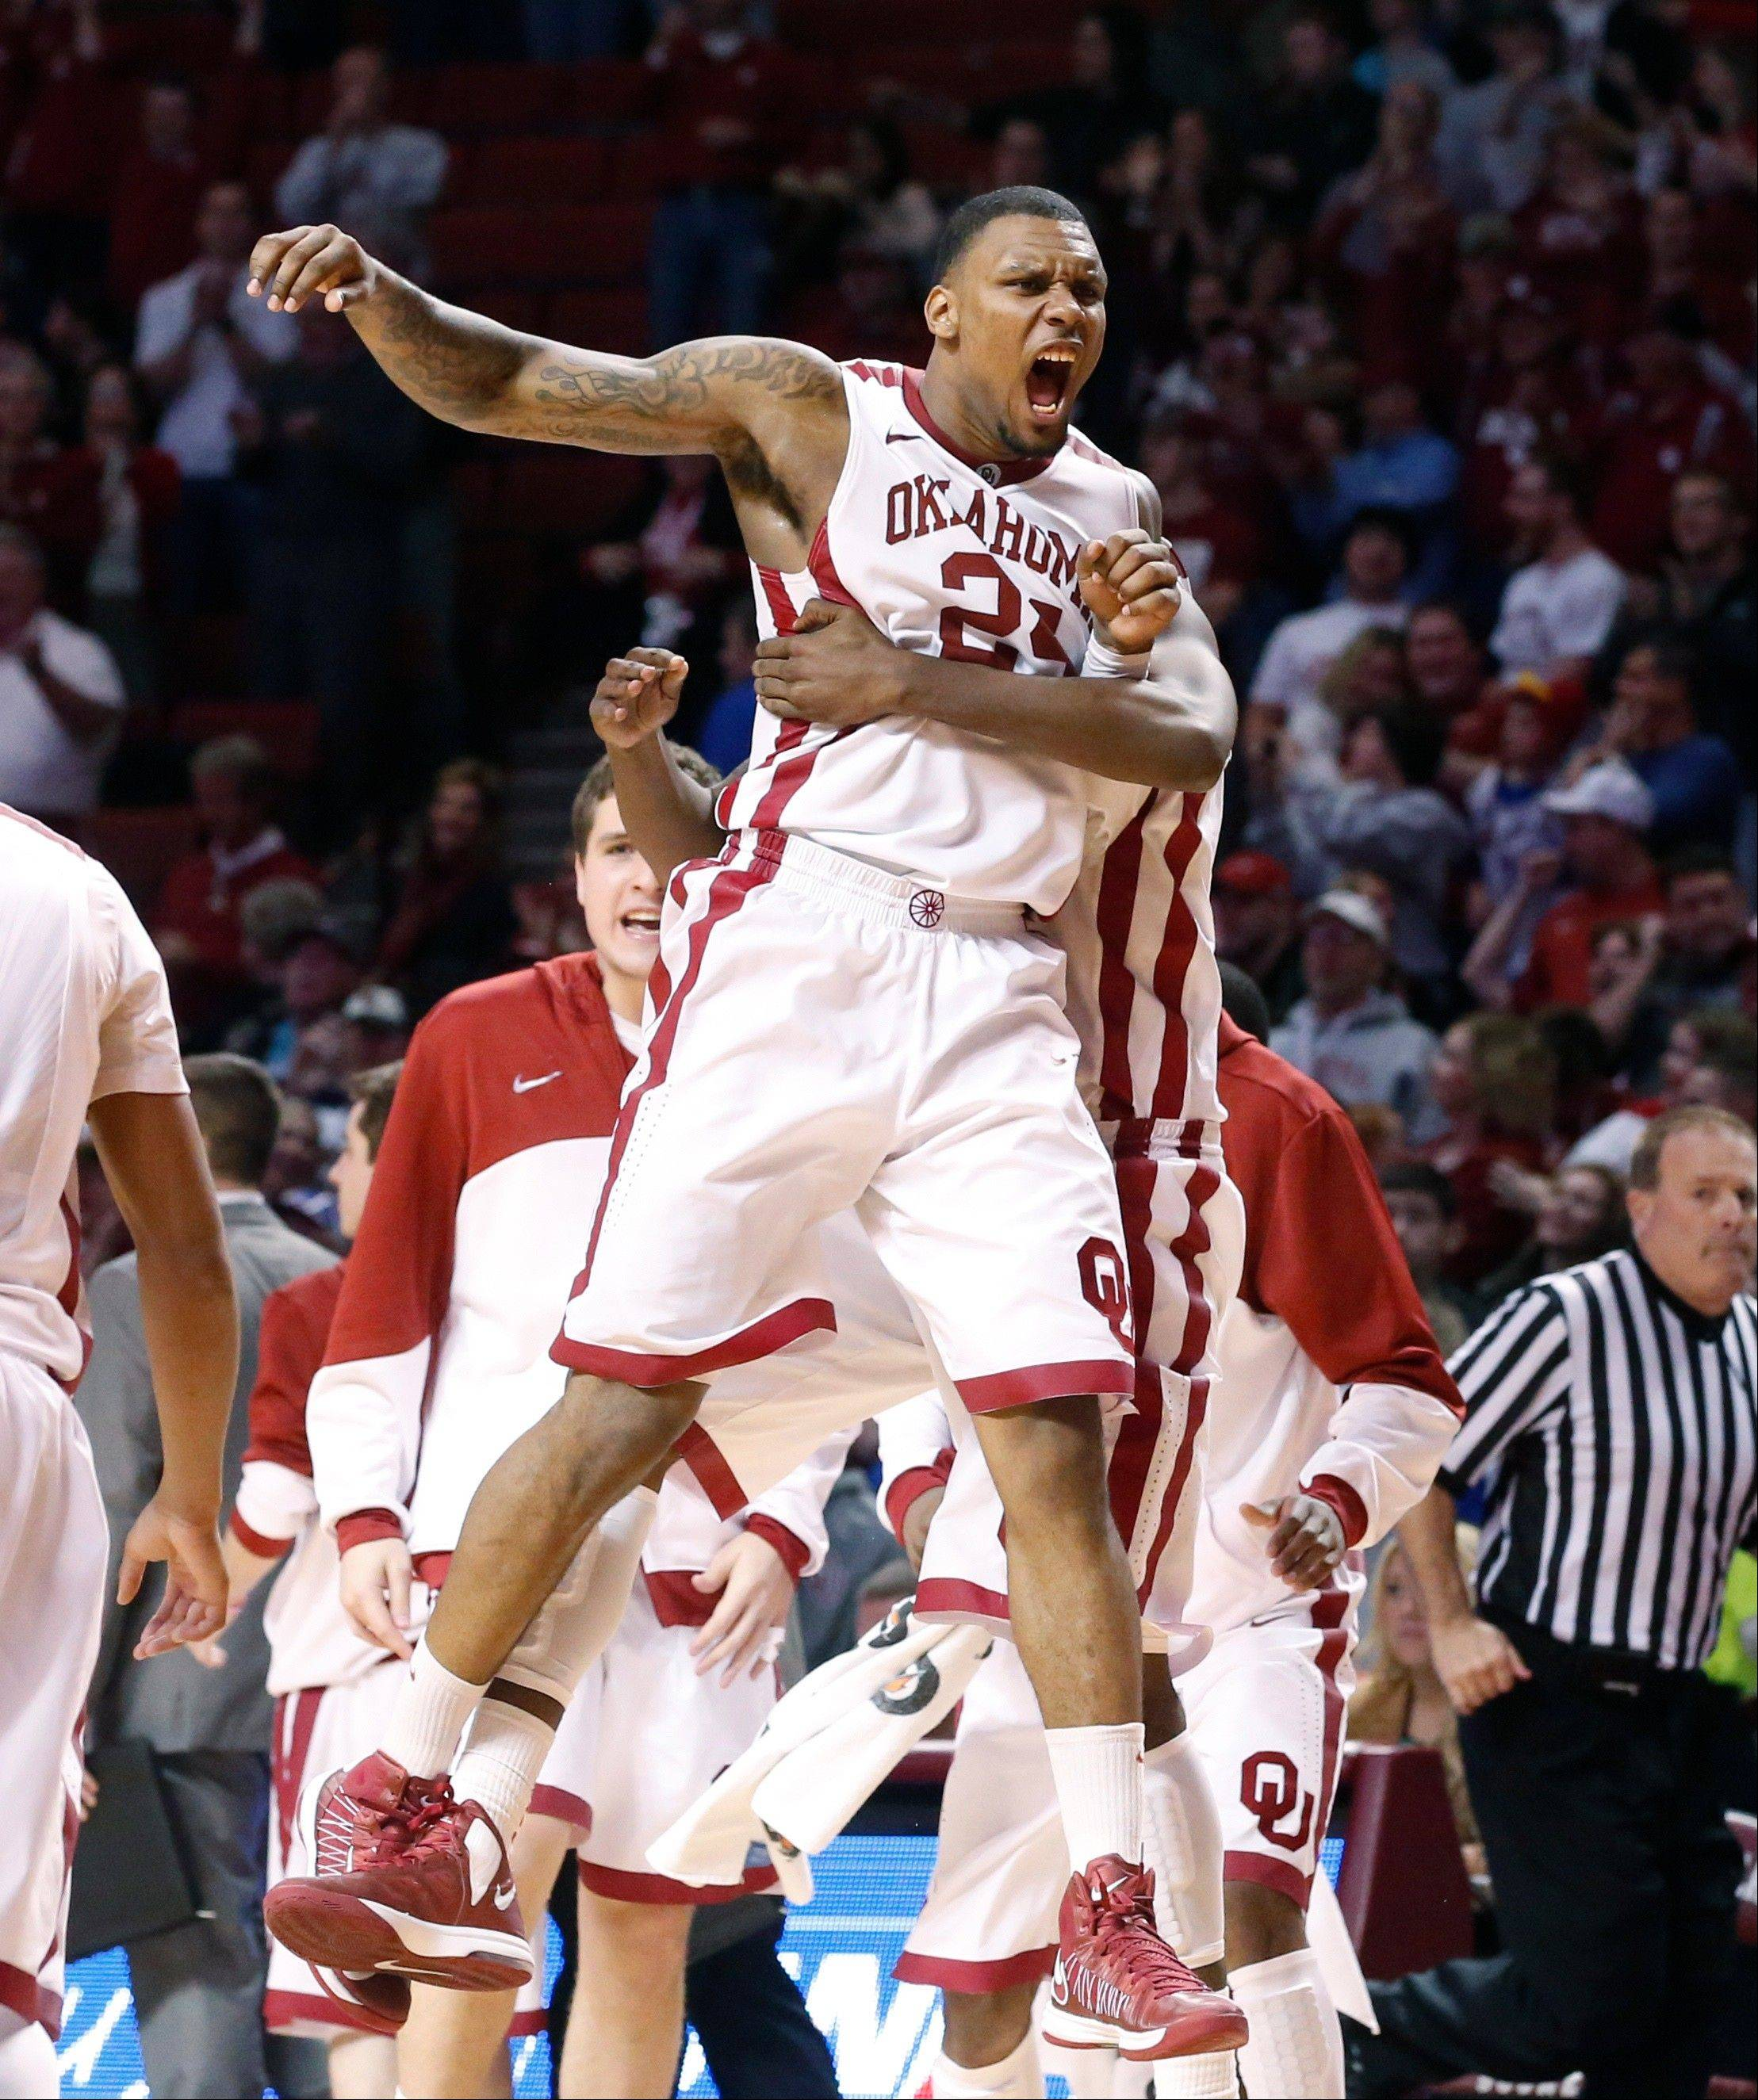 Oklahoma forward Romero Osby (24) jumps into the arms of teammate Andrew Fitzgerald, rear, at the end of the game as Oklahoma defeated Kansas 72-66 in an NCAA college basketball game in Norman, Okla., Saturday, Feb. 9, 2013.